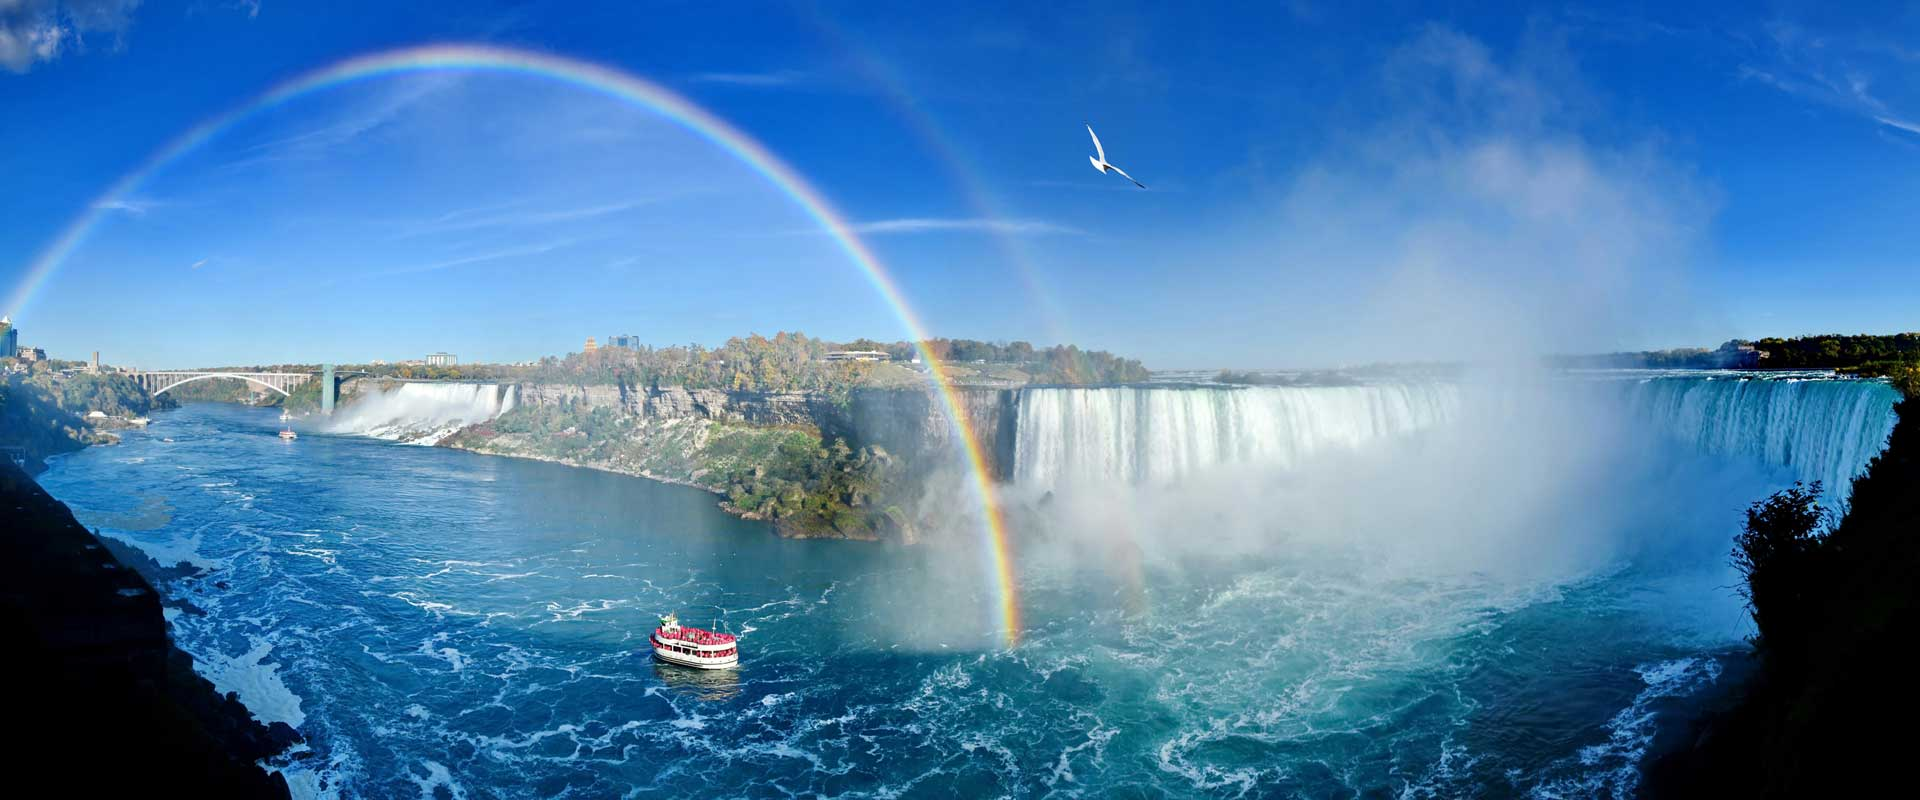 Which Offers Best Limo Ride From Toronto To Niagara Falls?